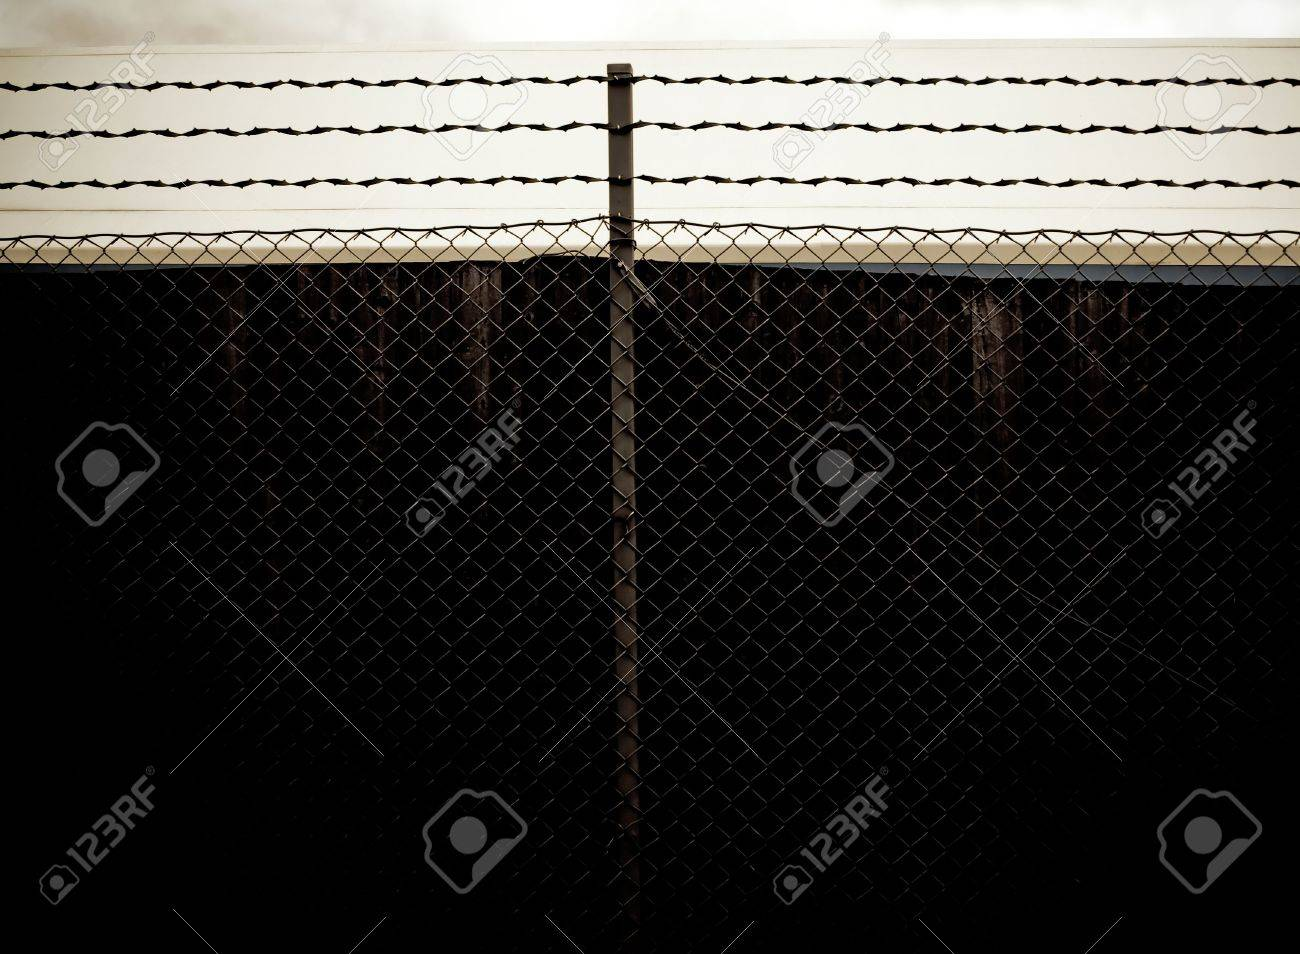 dark old prison fence with barbed wire Stock Photo - 2349088